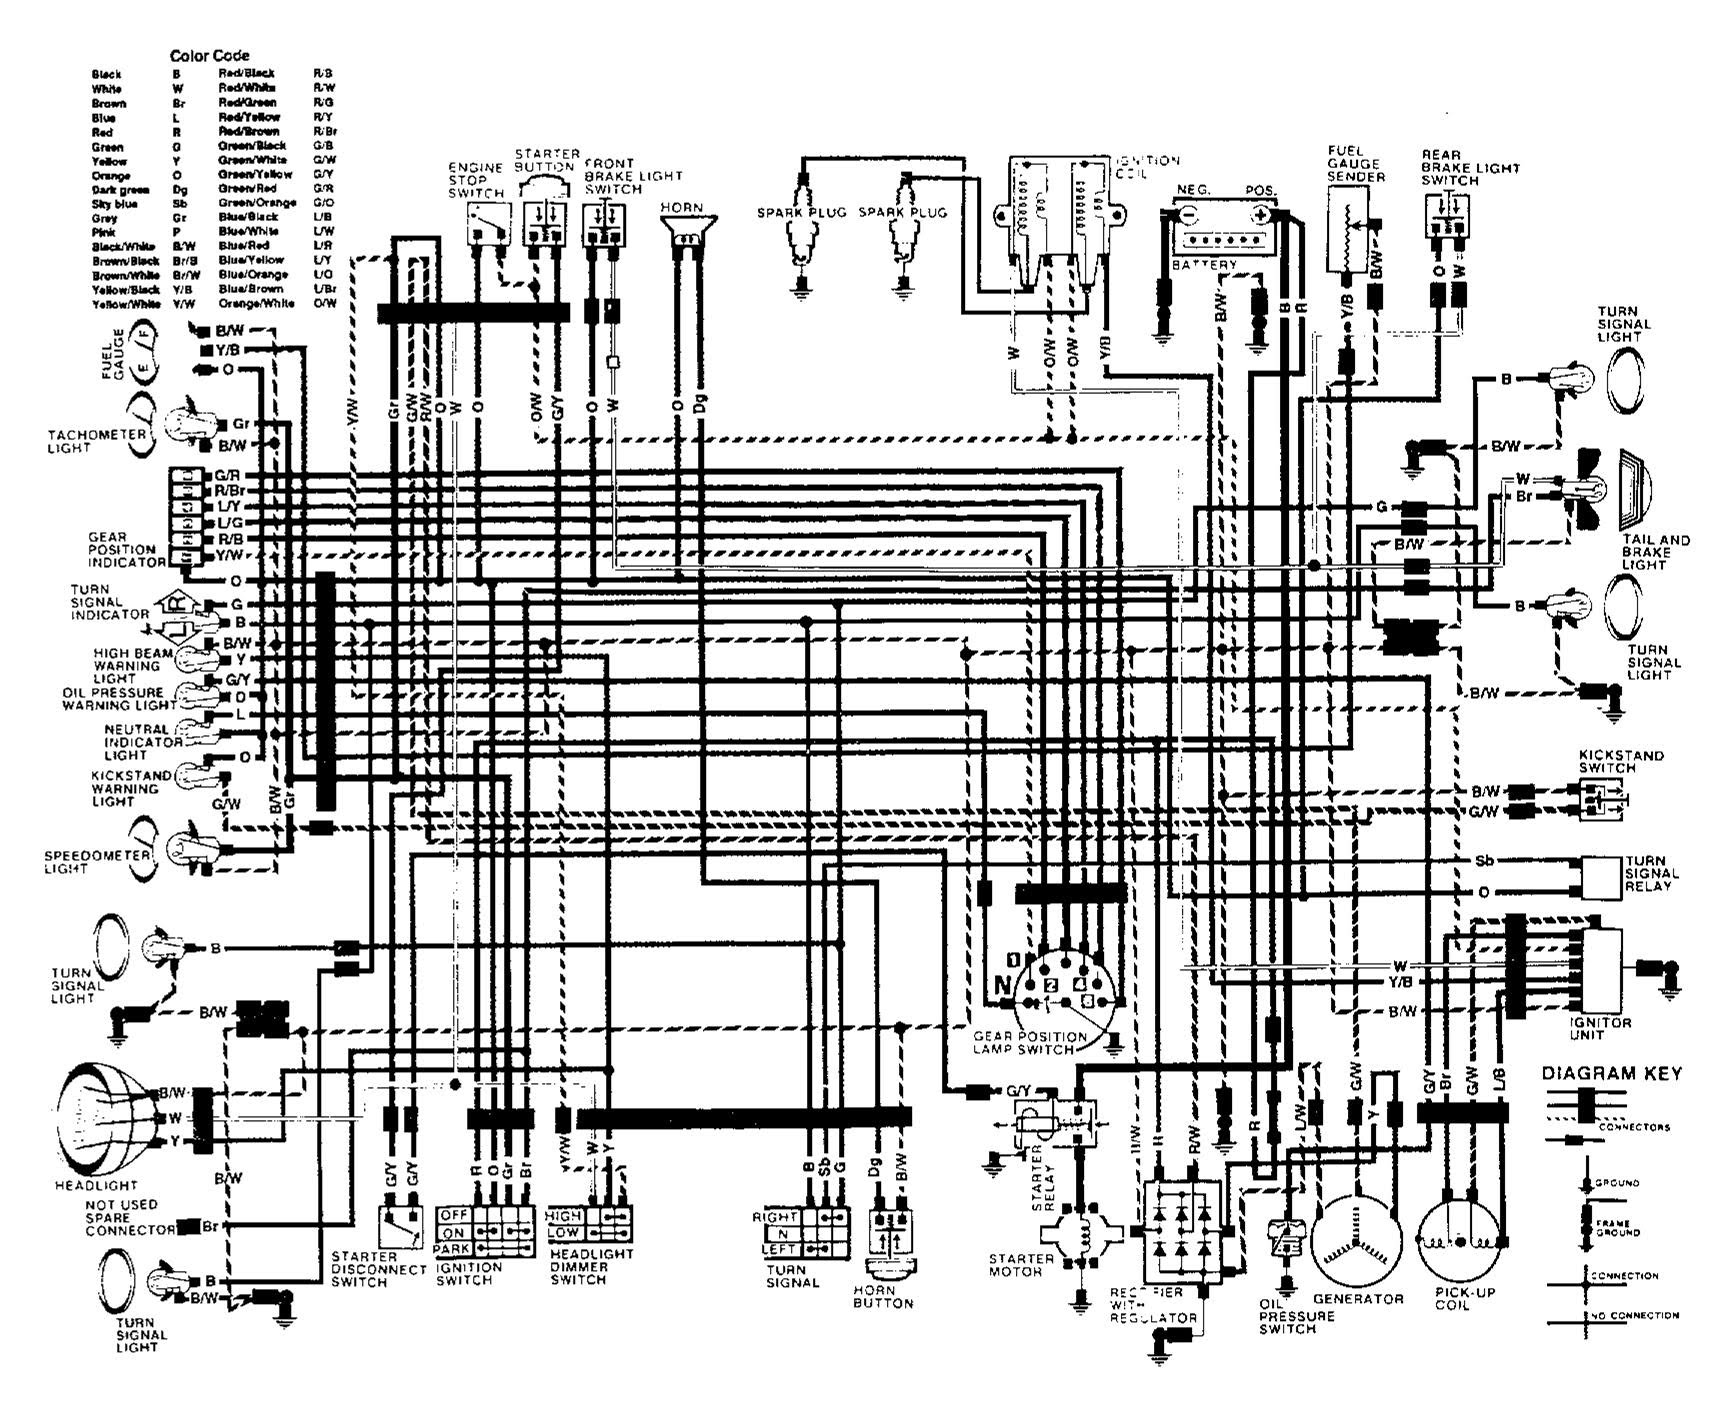 gs450 wiring diagram schematics wiring diagrams u2022 rh seniorlivinguniversity co 1983 Suzuki GS 450 Specs 1980 gs450 wiring diagram